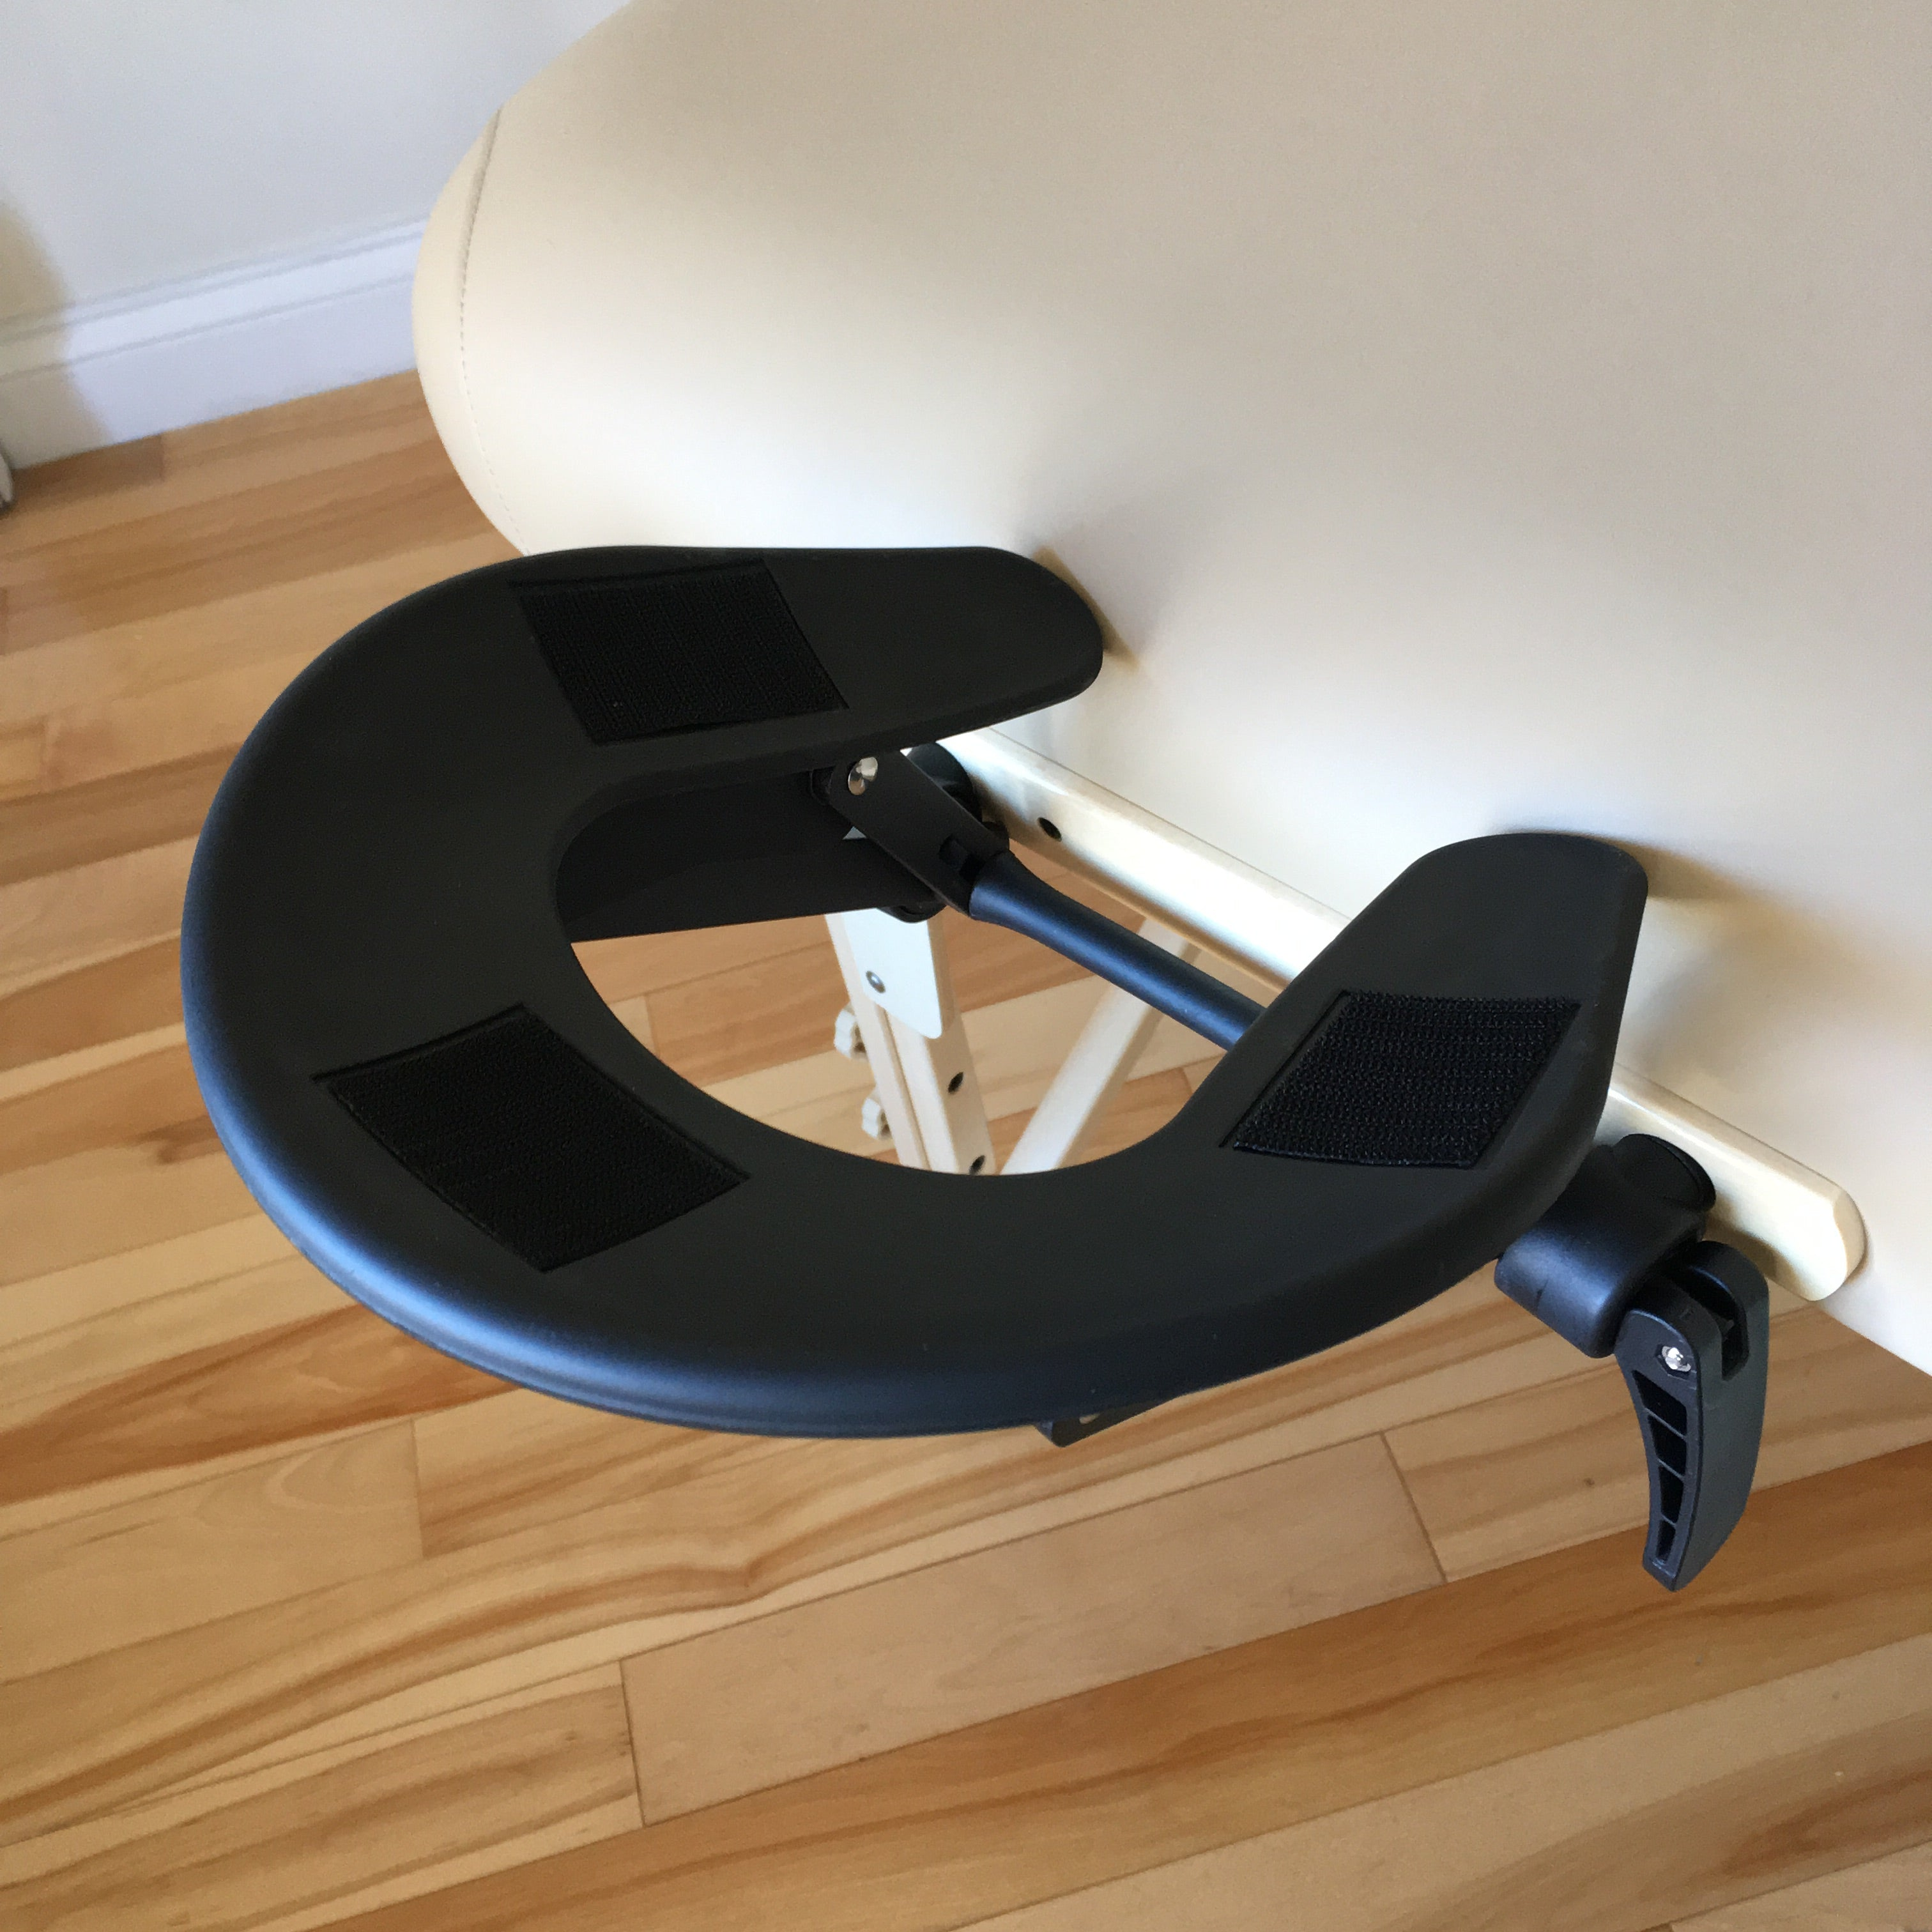 Face or Head Cradle for Massage Table - Contoured